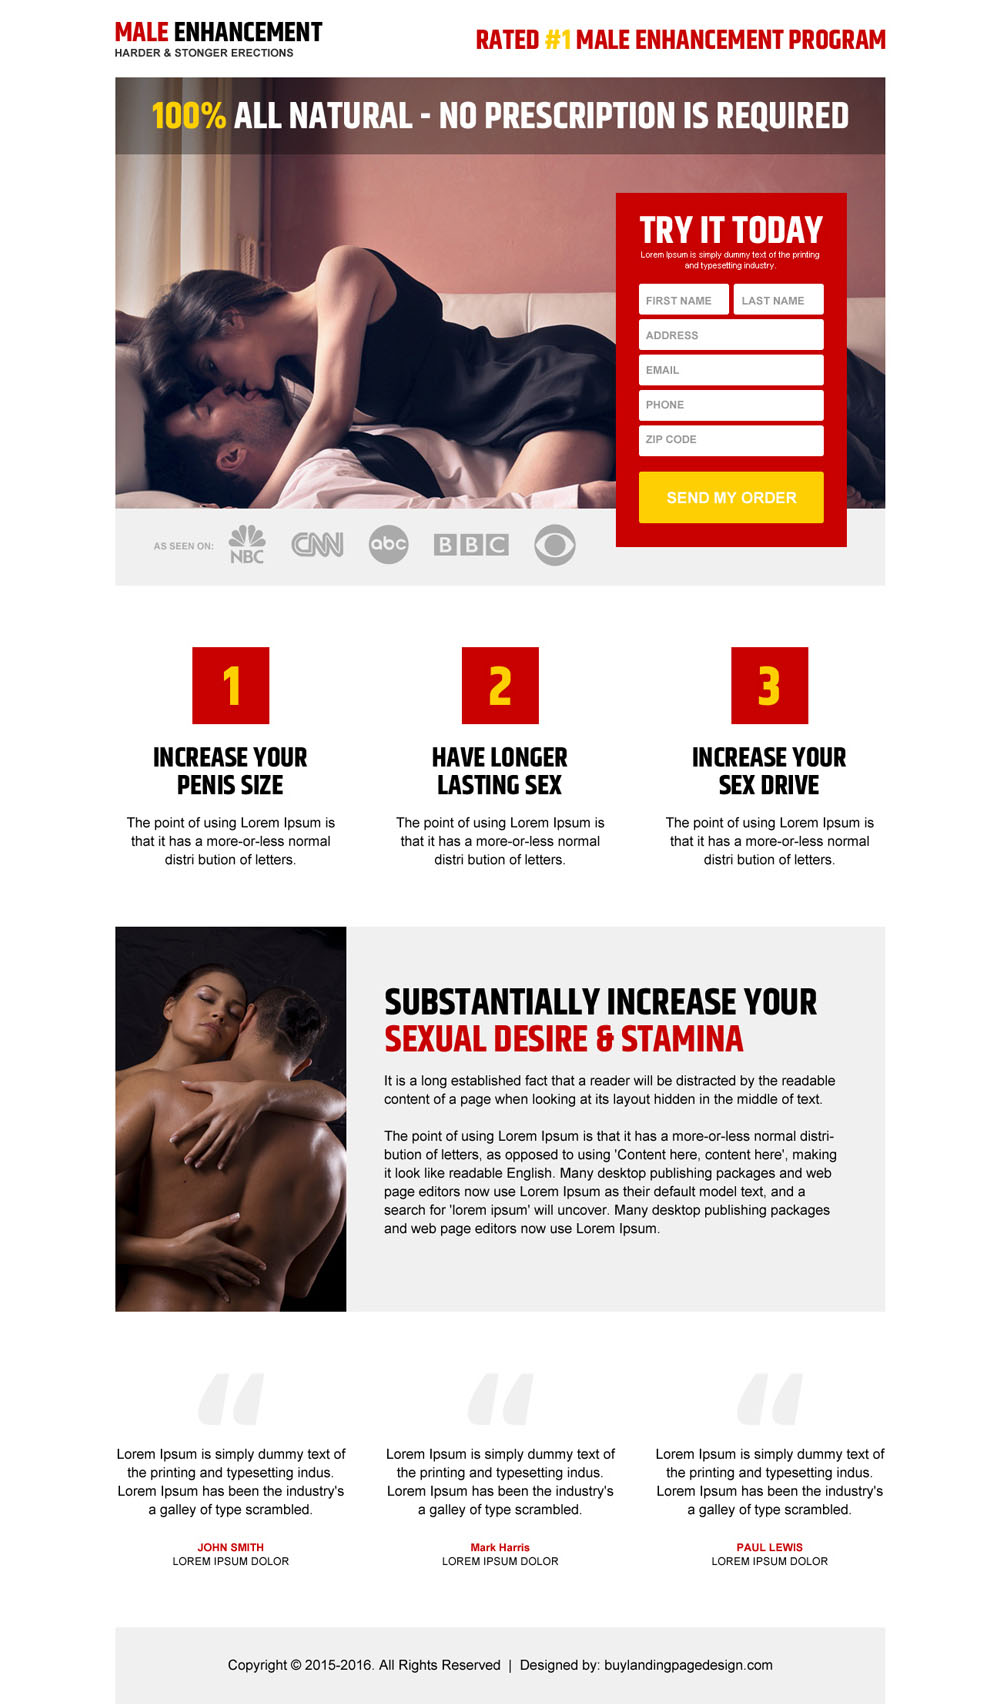 clean-male-enhancement-landing-page-design-for-male-enhancement-product-free-trial-020